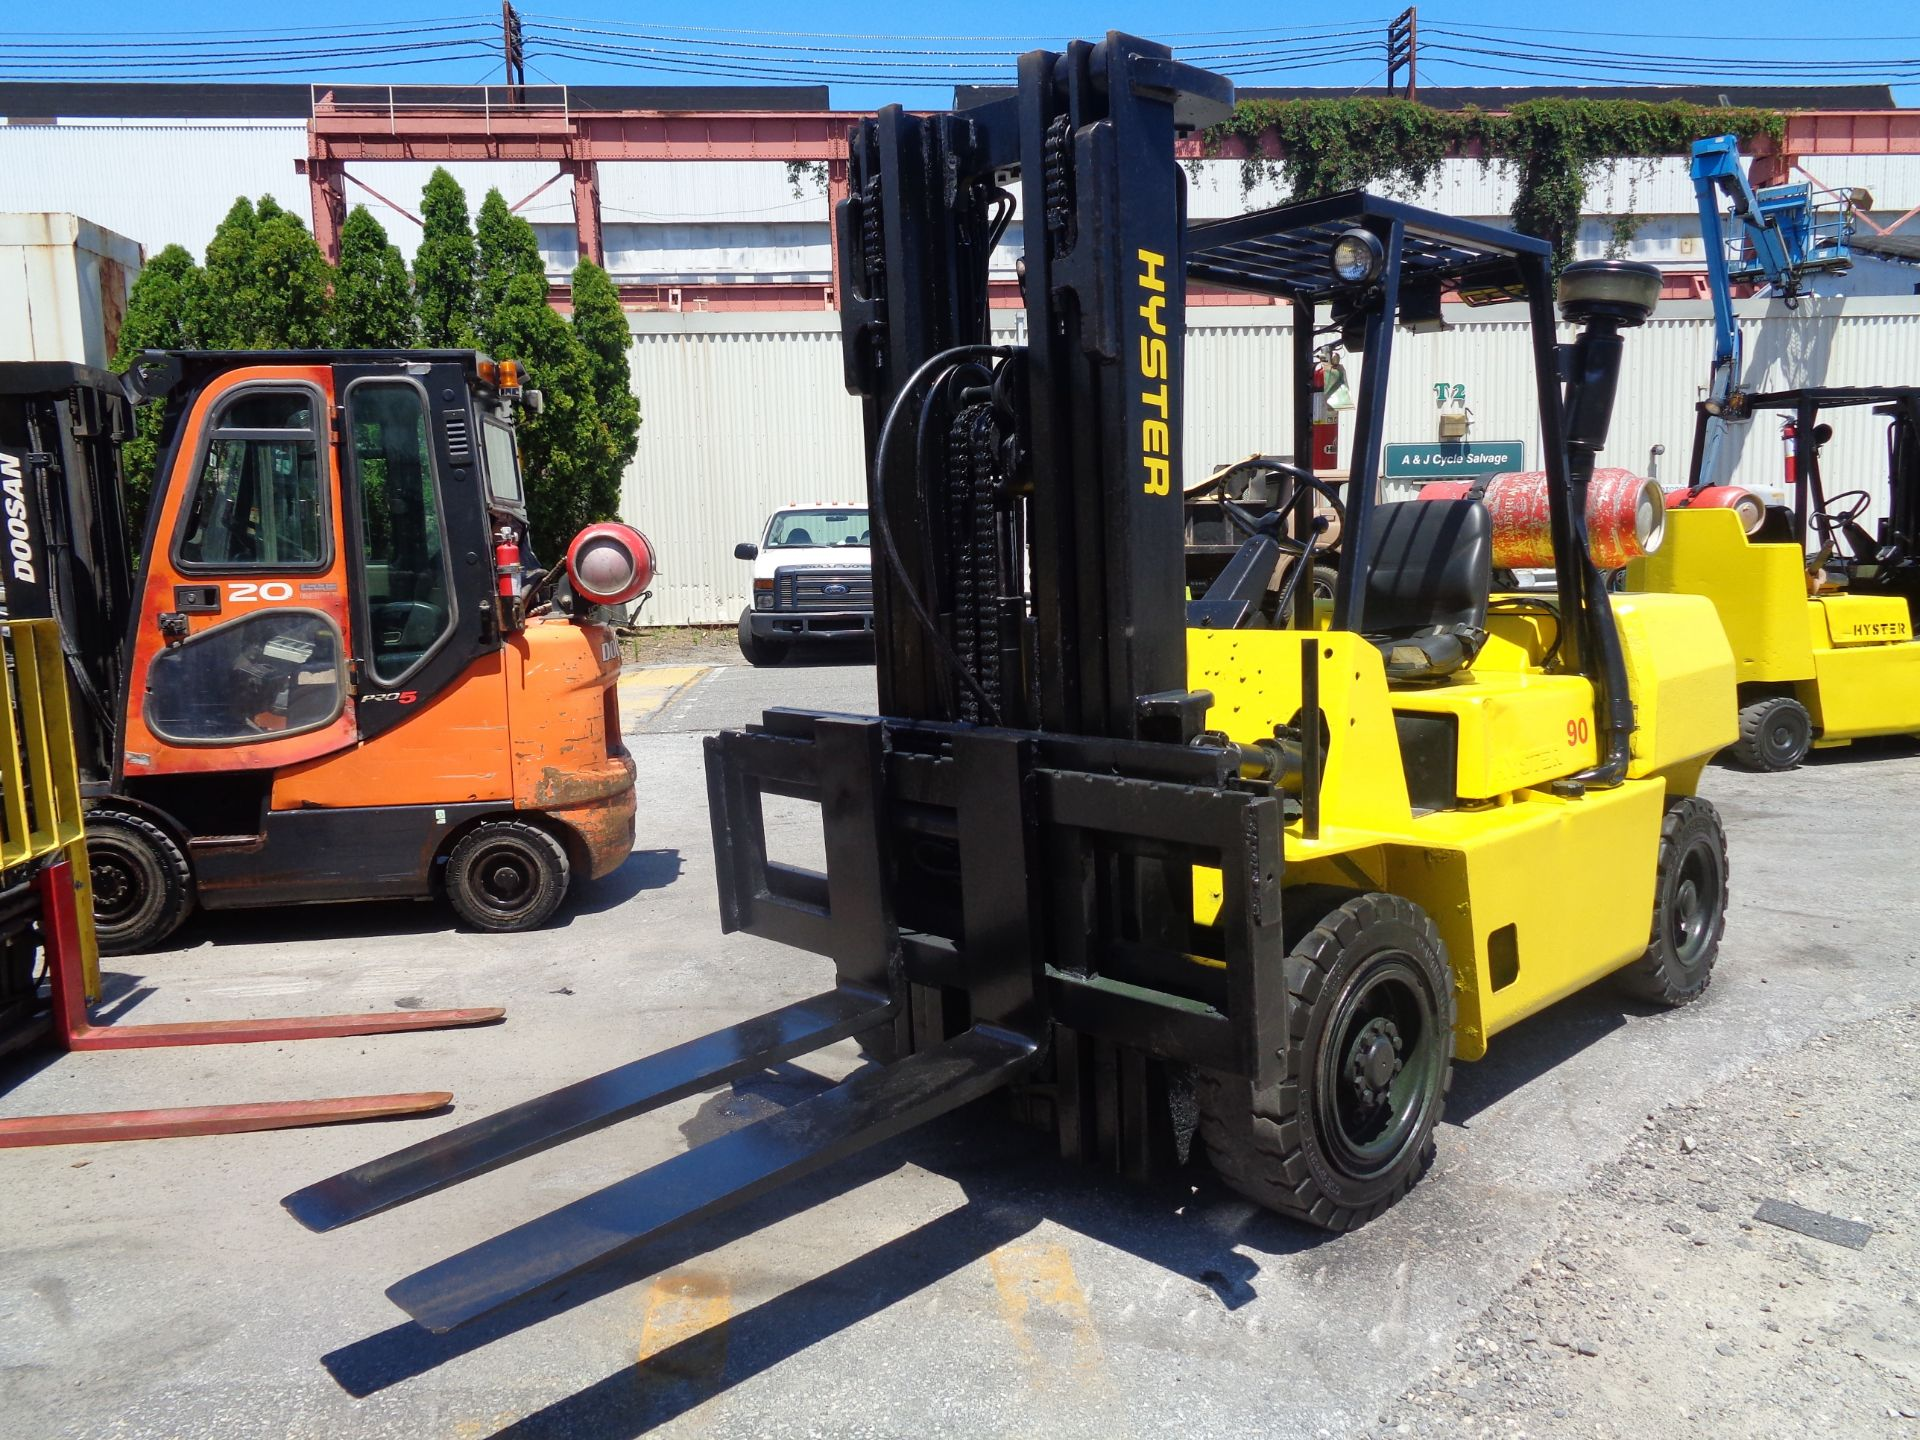 Hyster H90XLS Forklift 9,000 lbs - Image 3 of 13